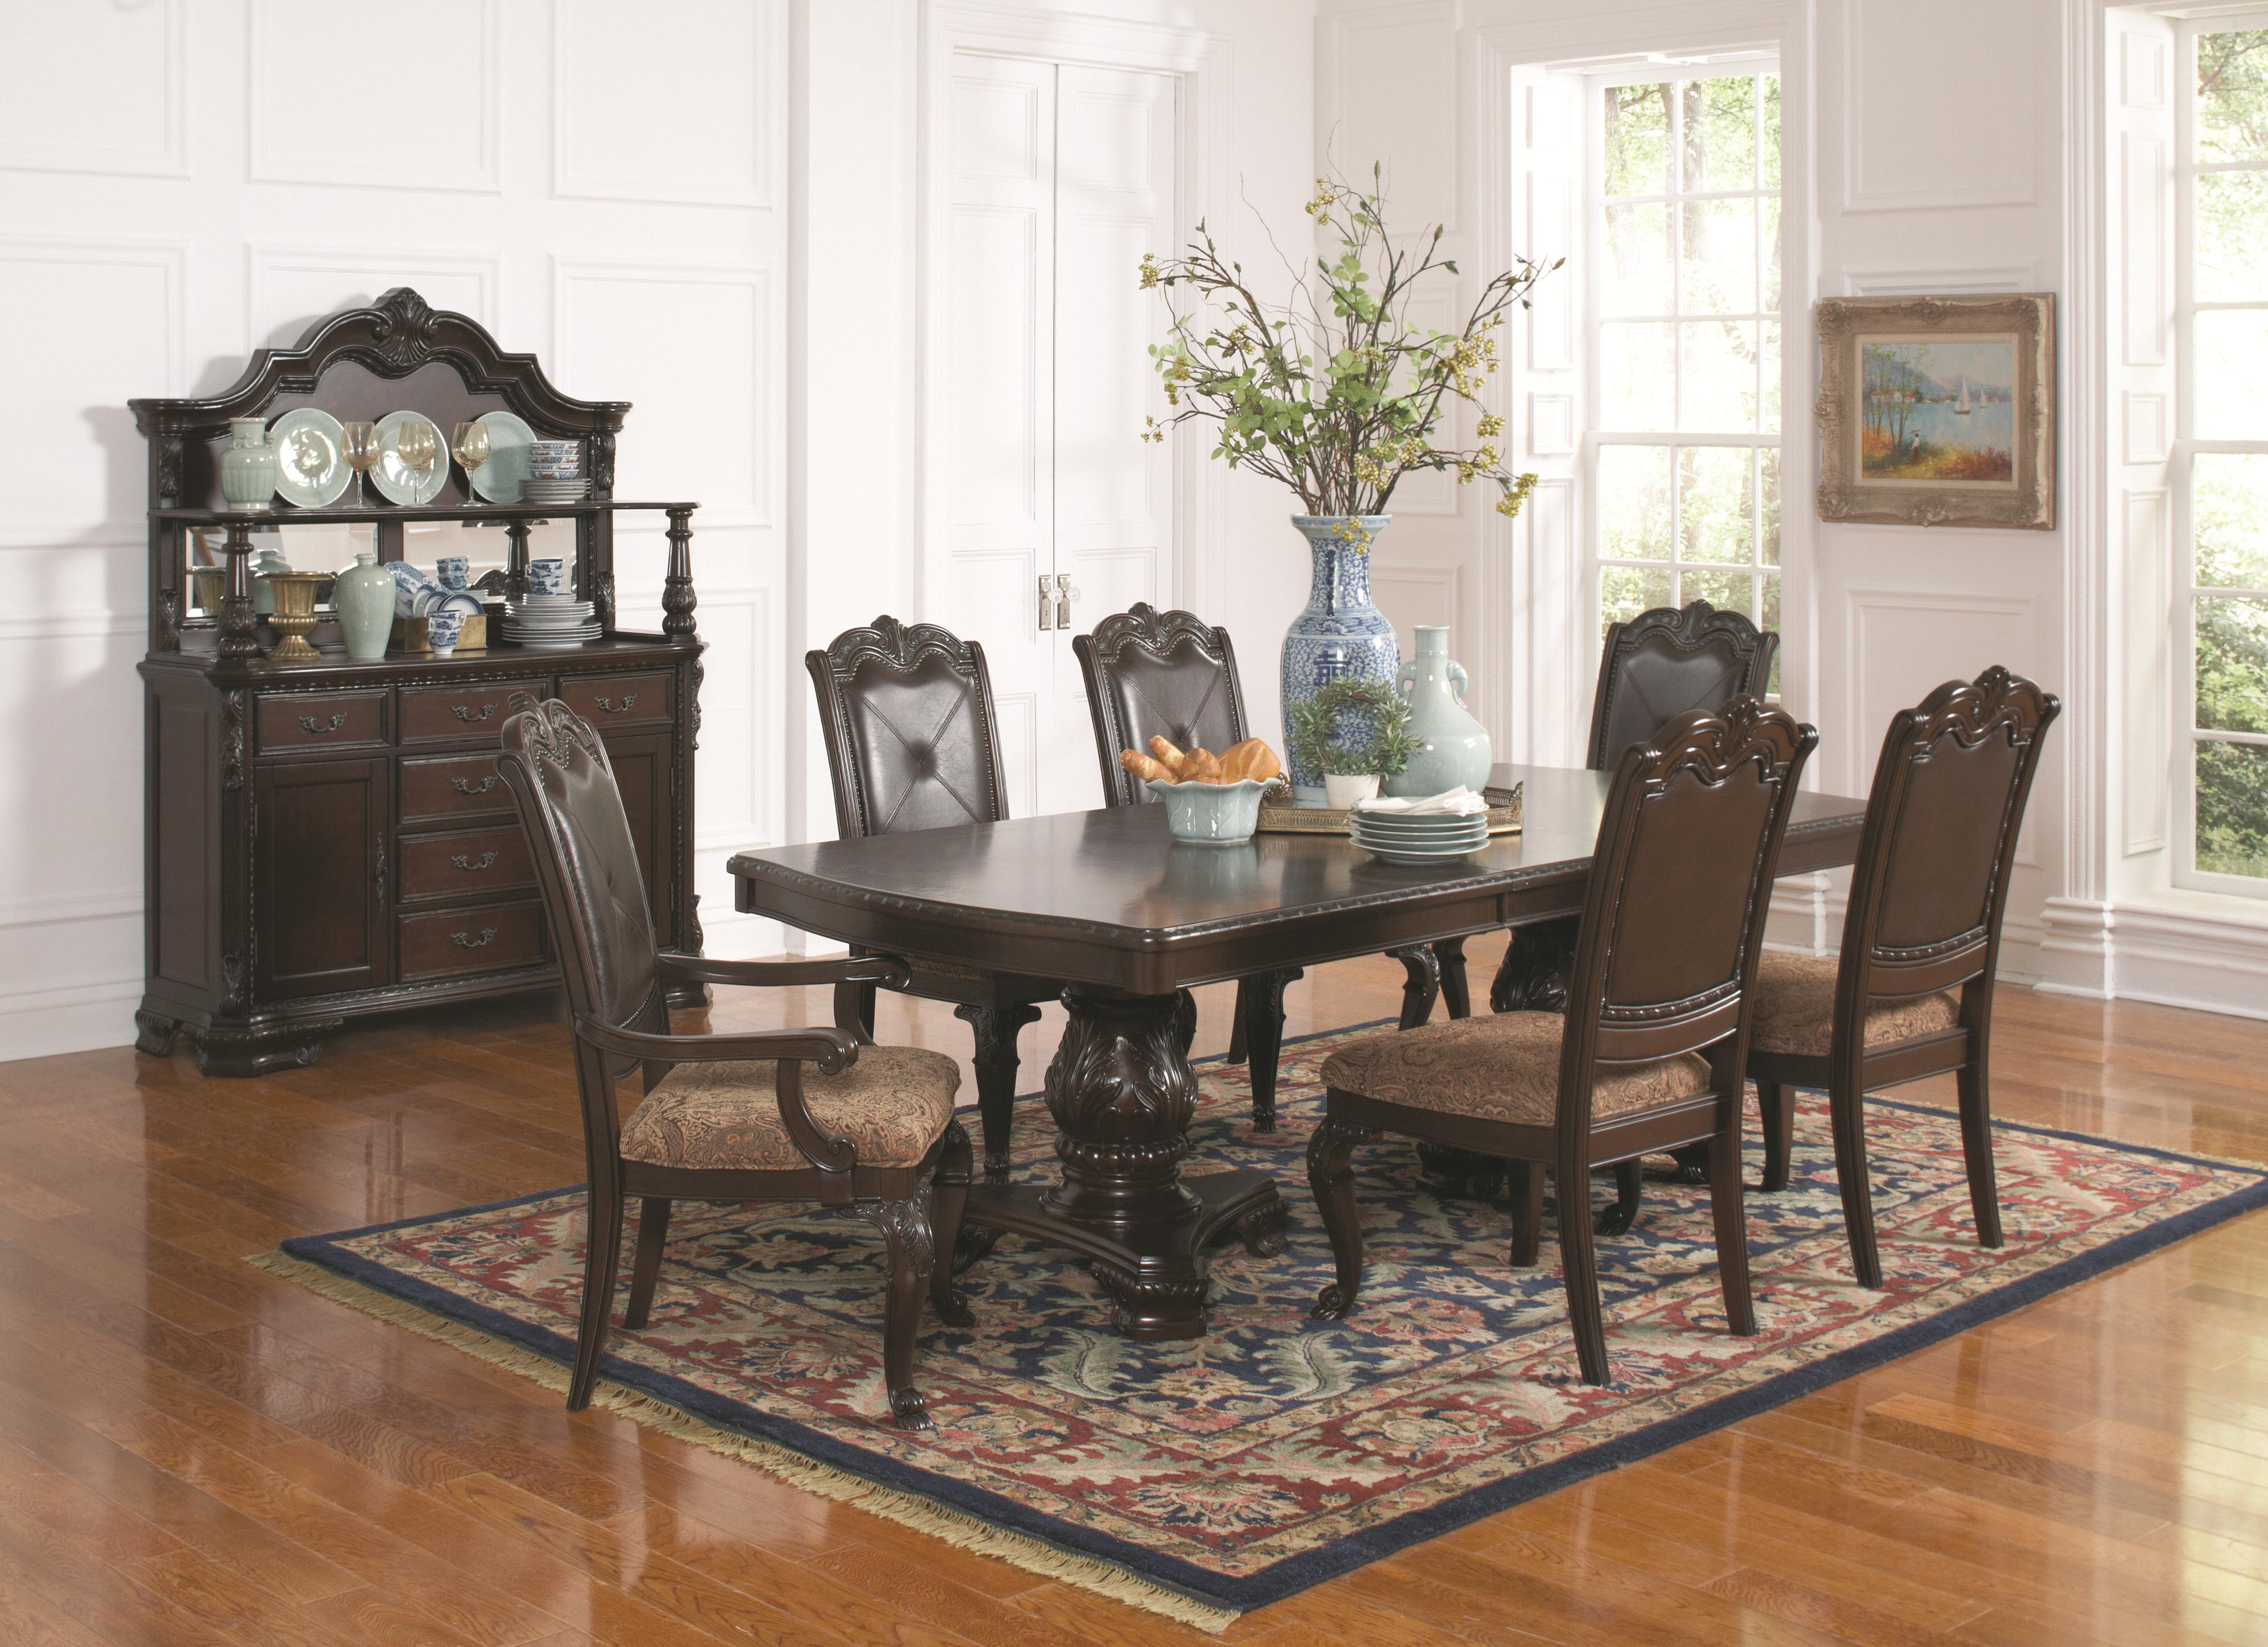 Coaster Valentina Formal Dining Room Group - Item Number: 105380 Dining Room Group 1